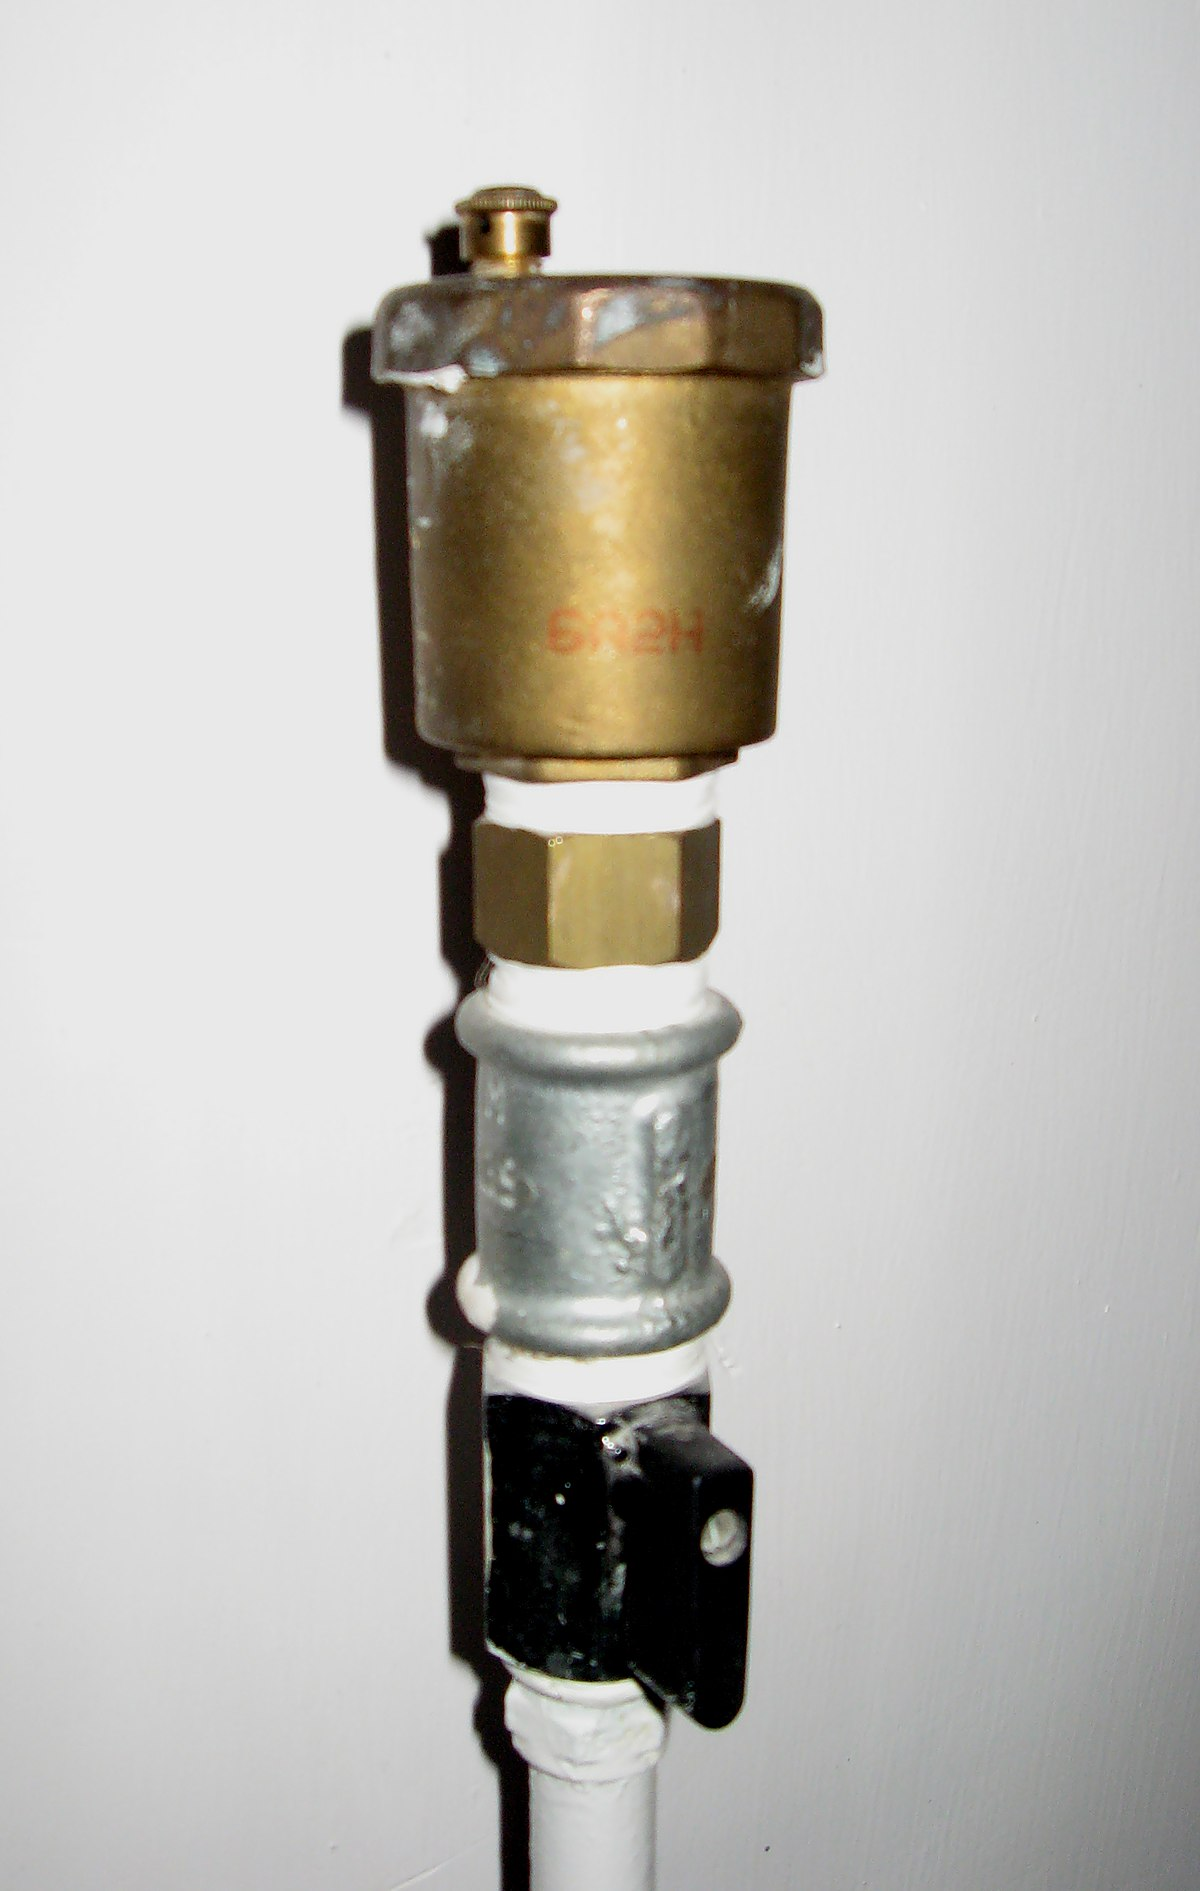 Automatic bleeding valve - Wikipedia